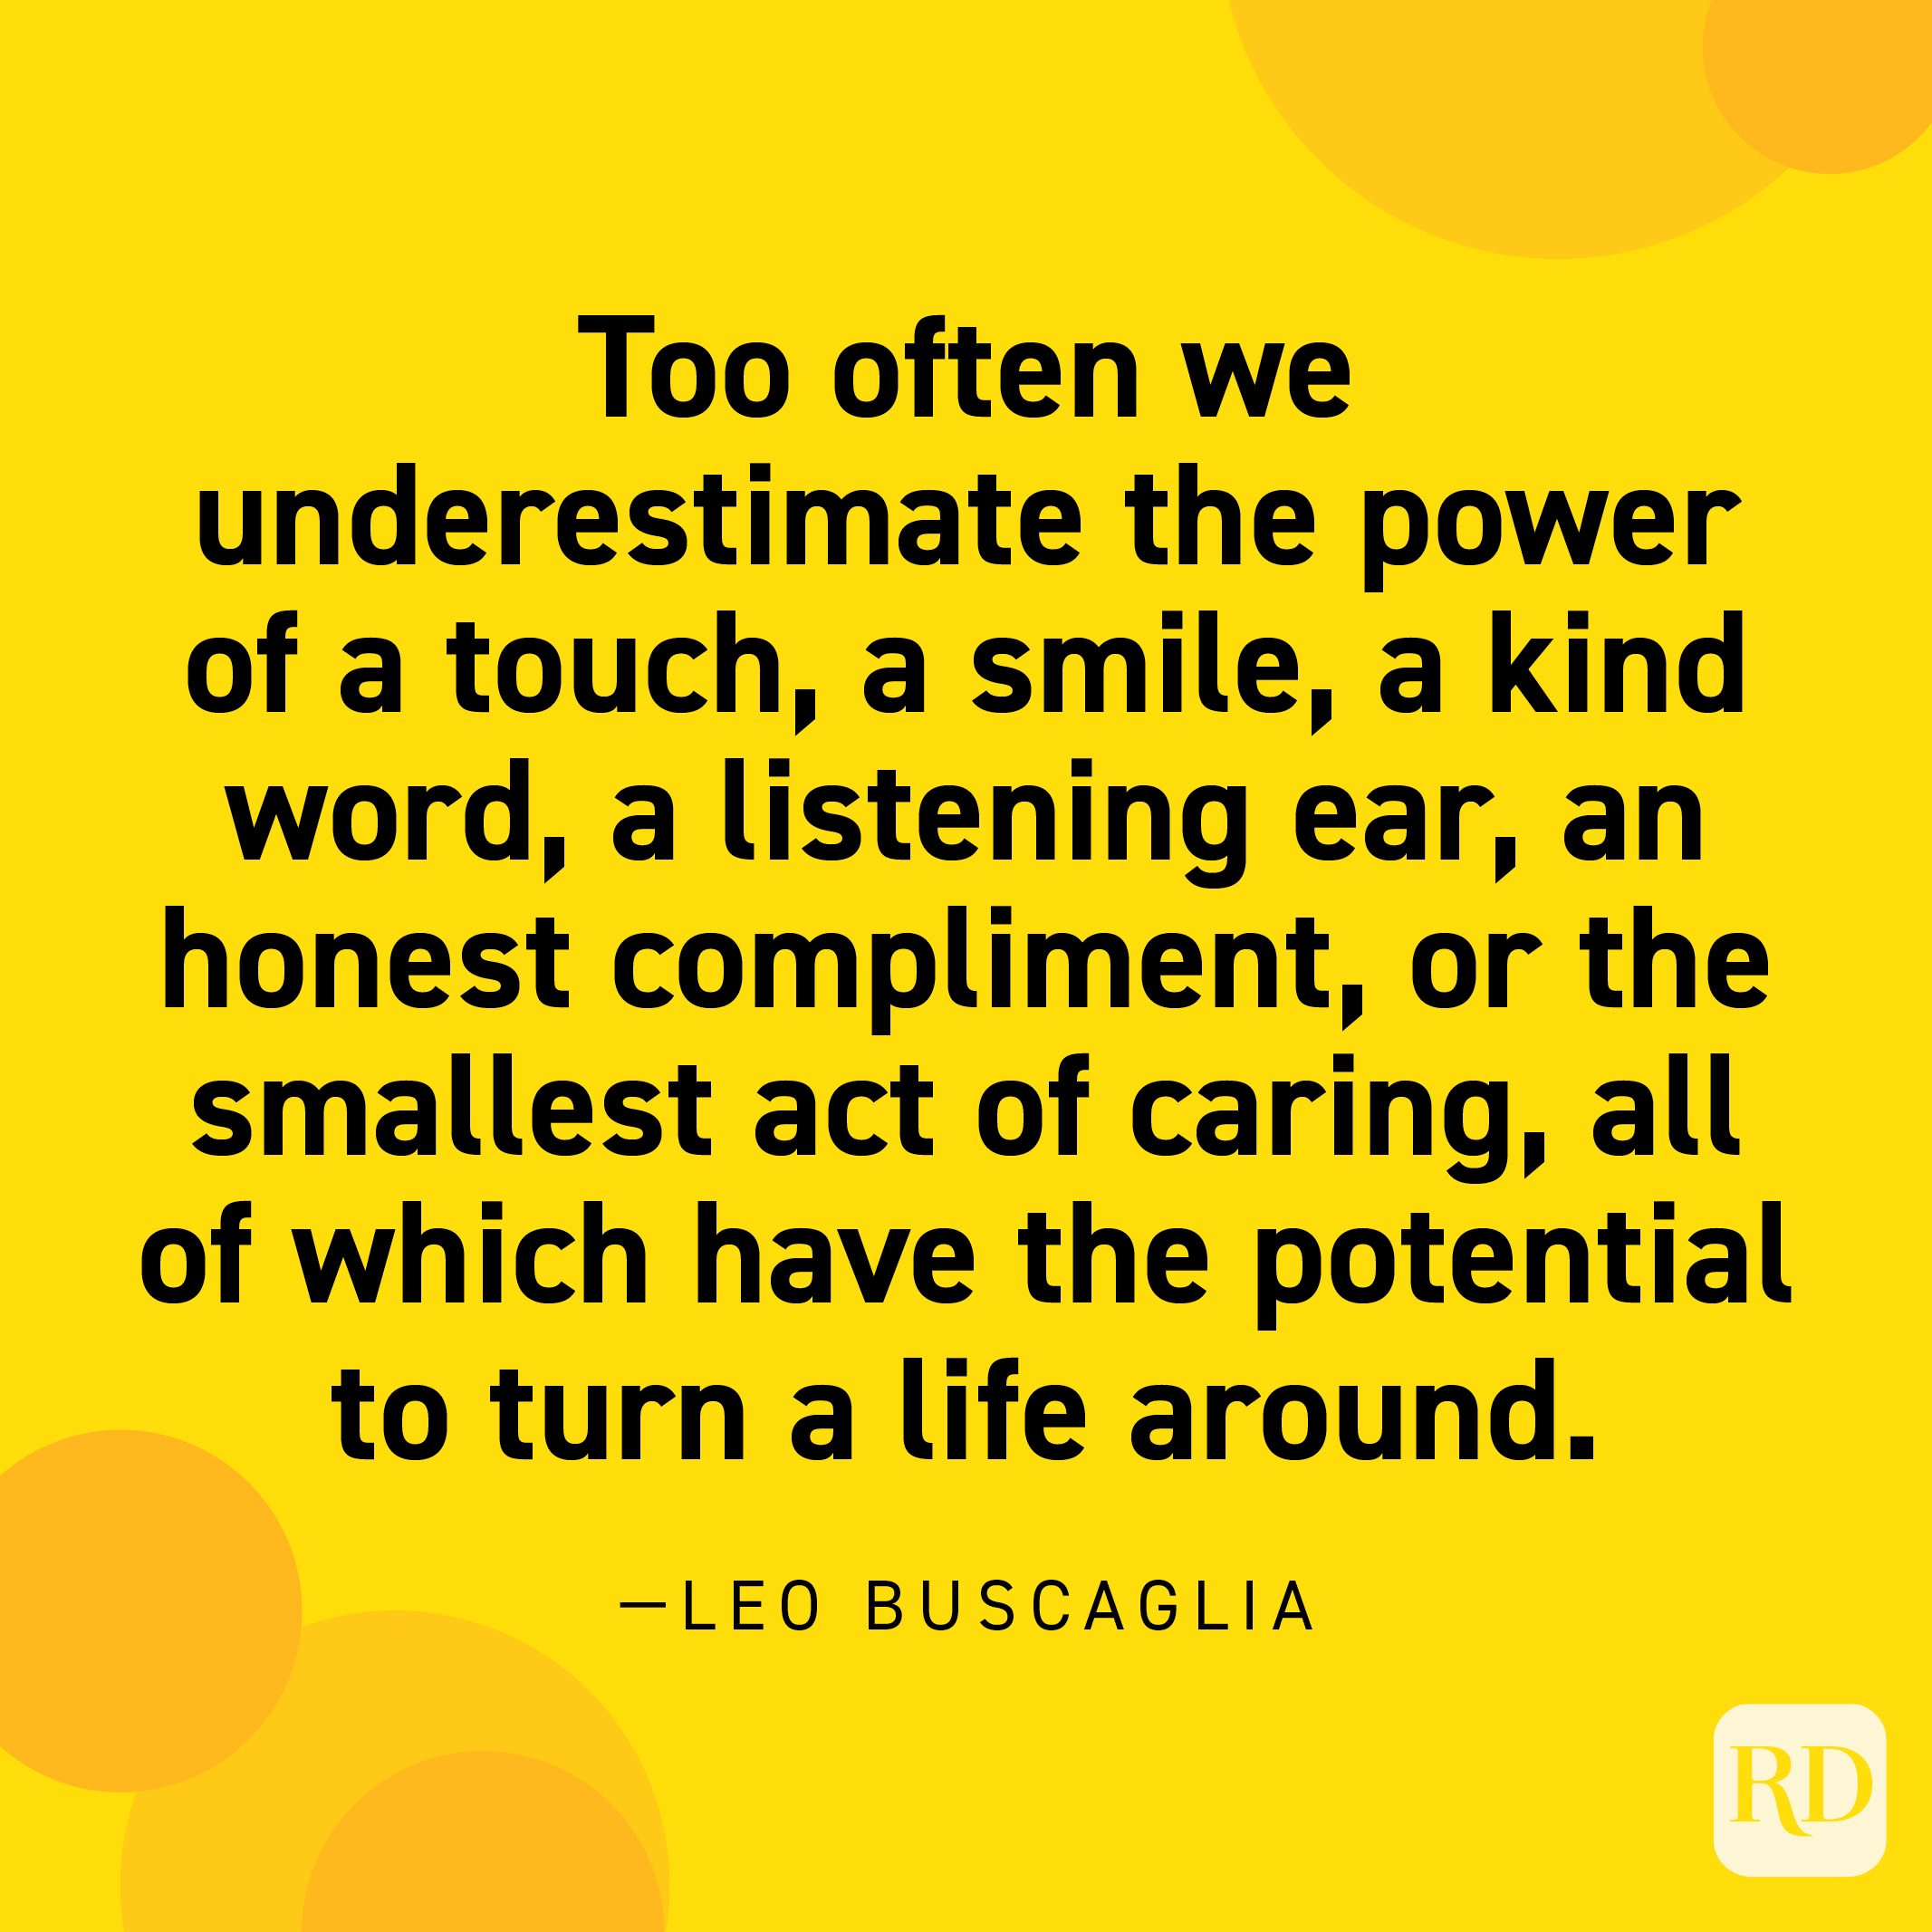 """""""Too often we underestimate the power of a touch, a smile, a kind word, a listening ear, an honest compliment, or the smallest act of caring, all of which have the potential to turn a life around."""" —Leo Buscaglia."""